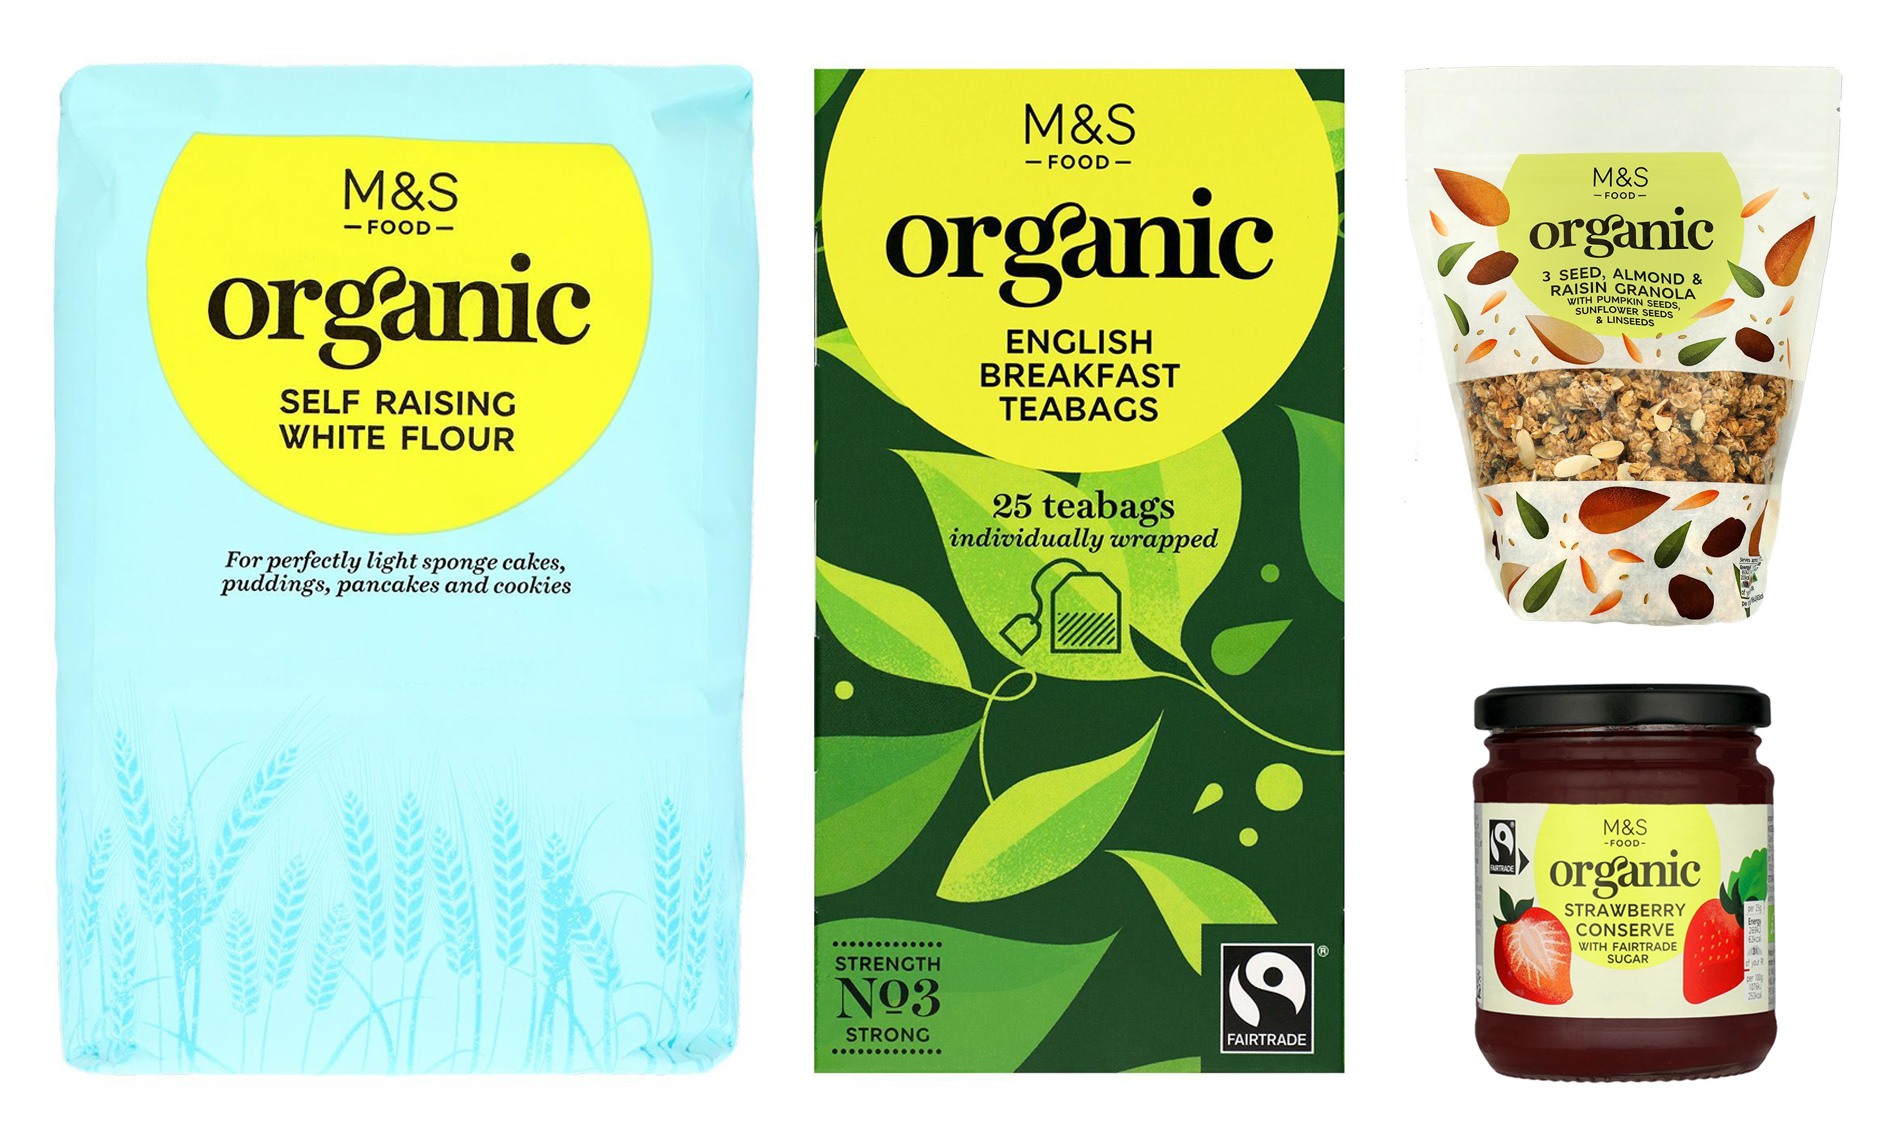 Marks & Spencer Organic food